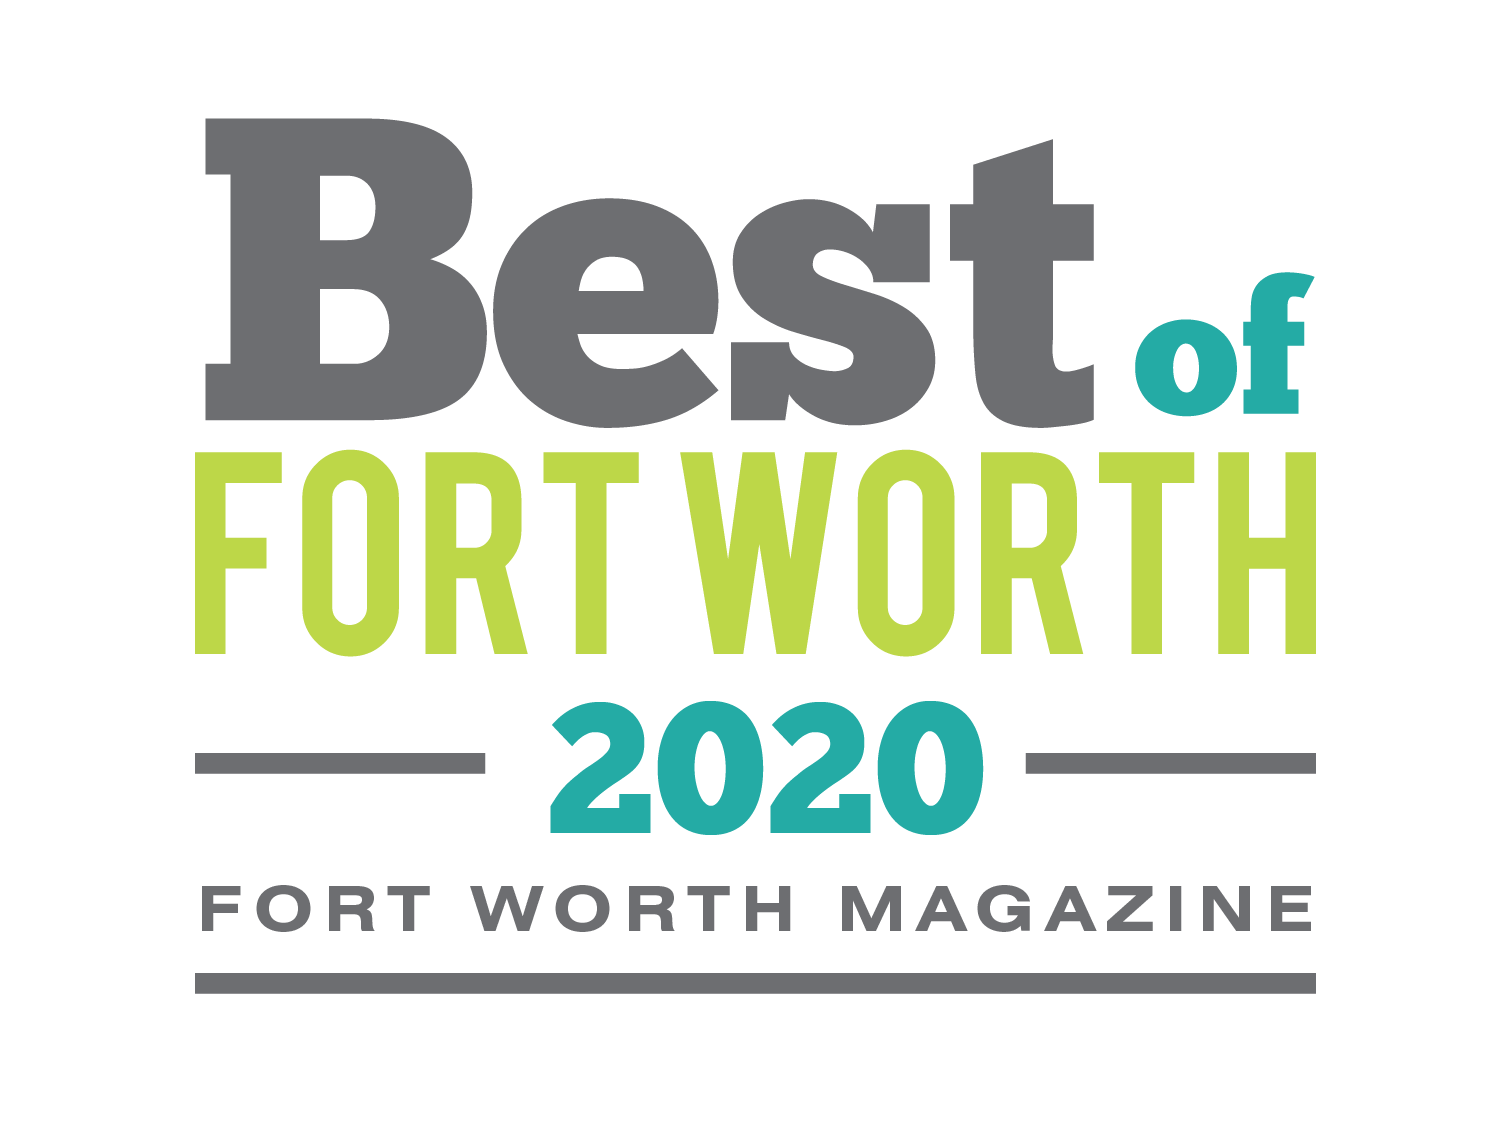 Best of Fort Worth 2020 - Best Travel Agency - Gulliver's Travel Service - FortWorth Magazine